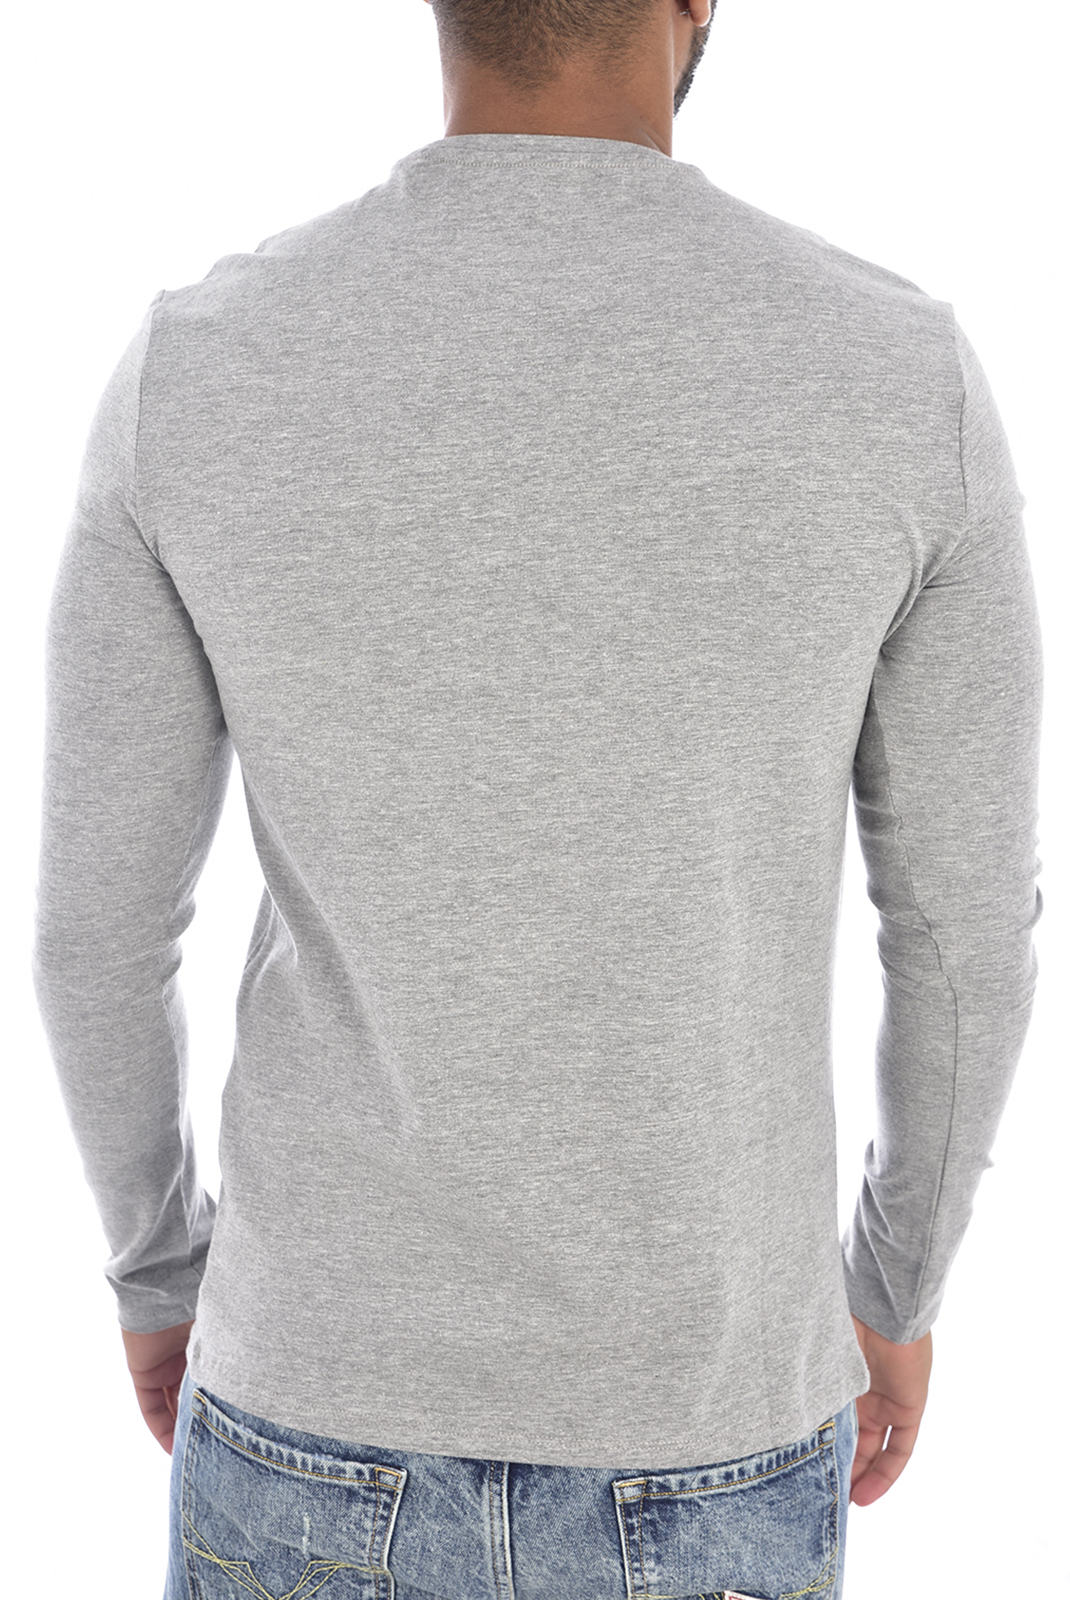 Tee-shirts  Guess jeans M94I34 J1300 STONE HEATHER GREY